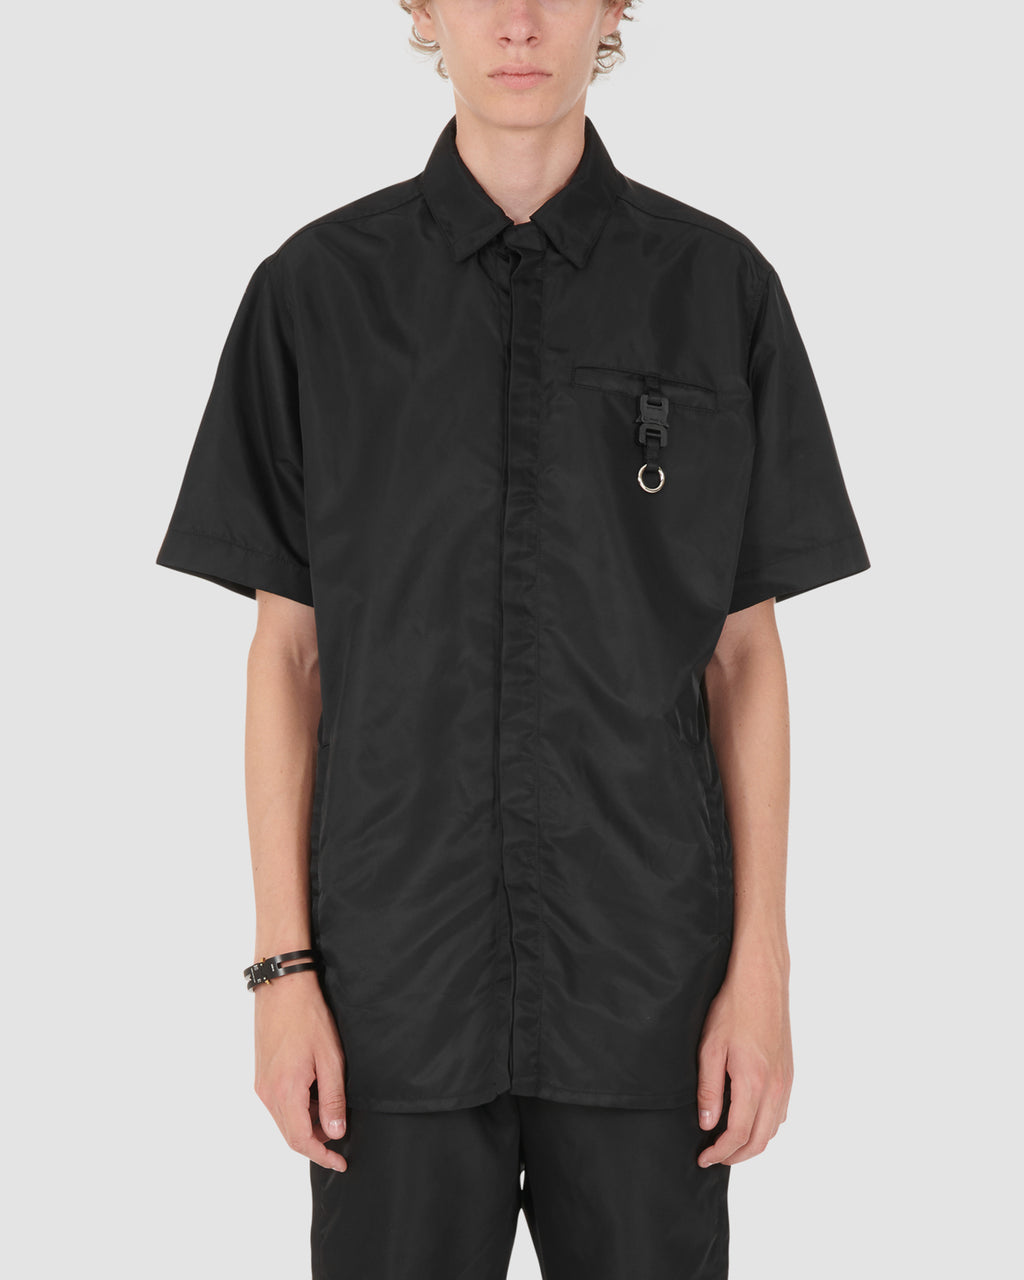 1017 ALYX 9SM | BLACK SS BUTTON UP W BUCKLE | Shirt | Black, Google Shopping, Man, MEN, S20, S20 Drop II, Shirts, TOPS & SHIRTS